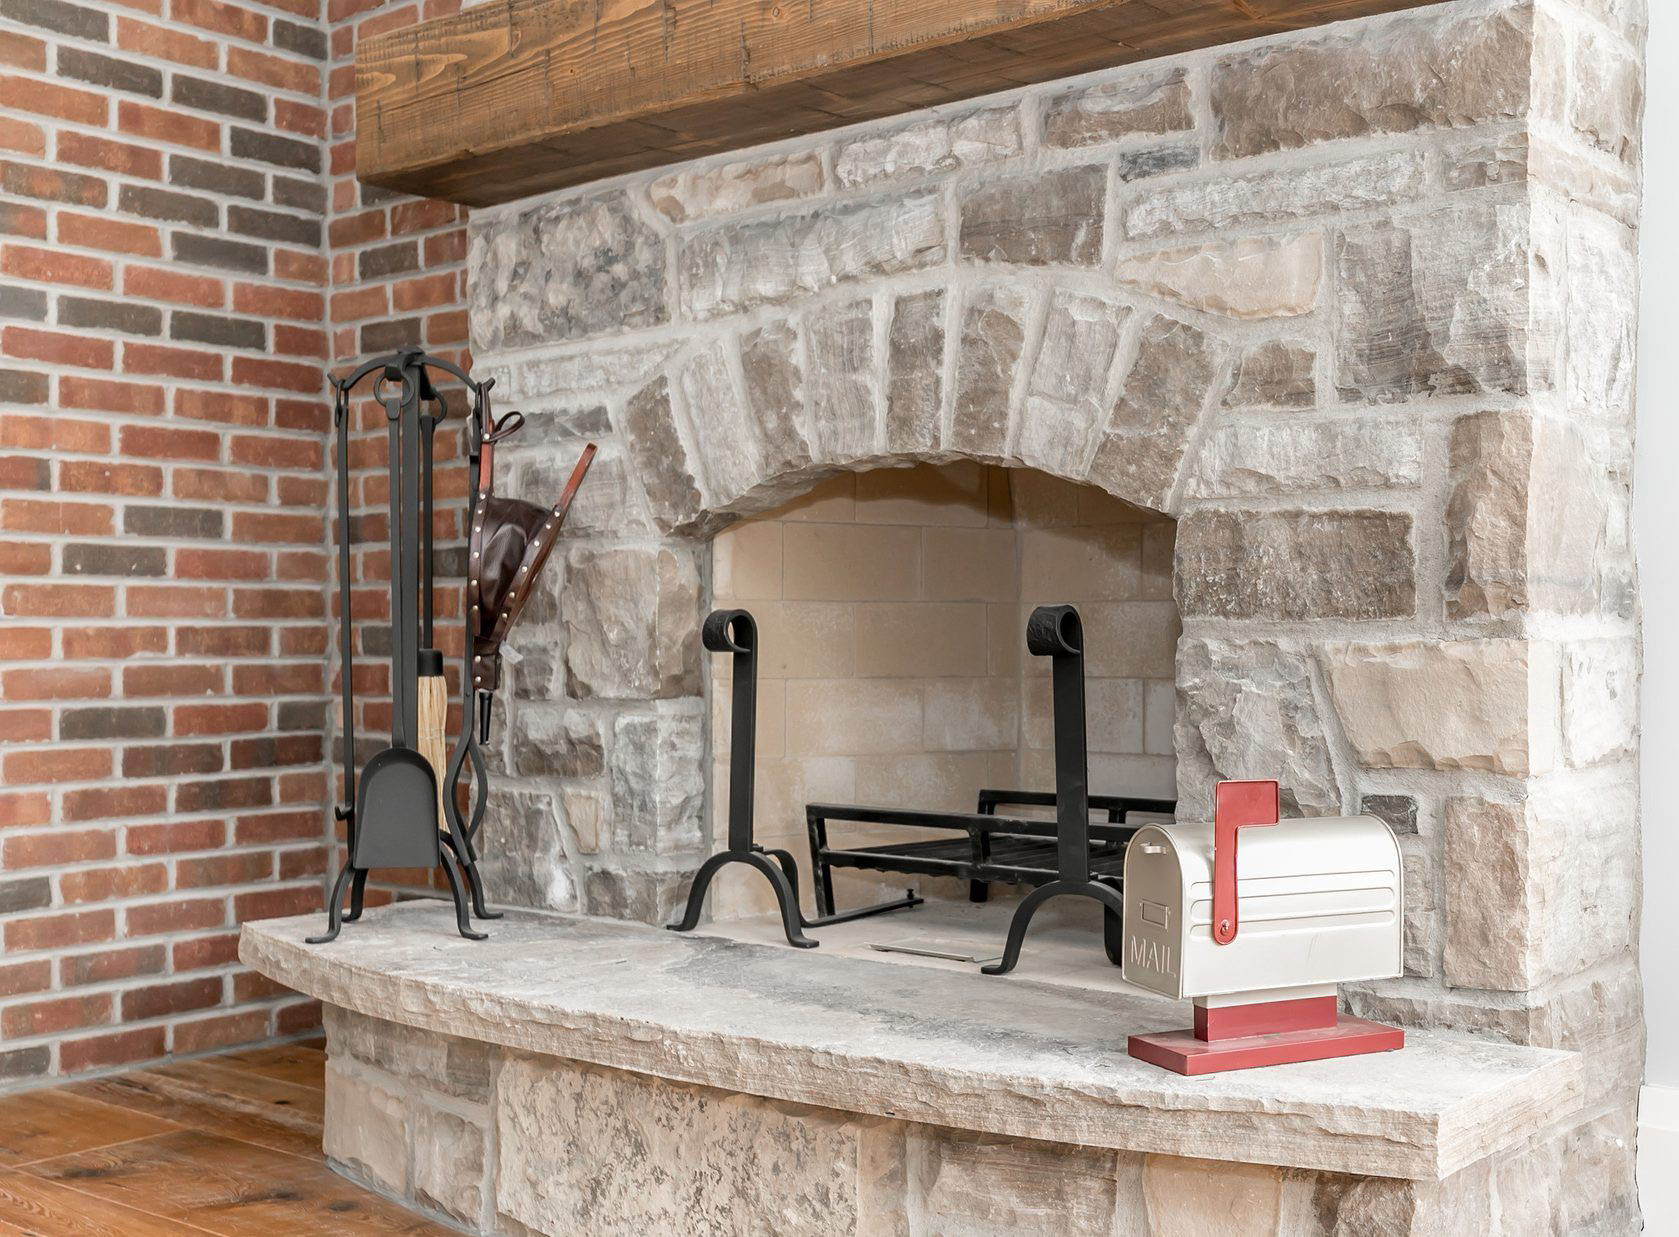 Custom built stone fireplace surround with a raised hearth and wood shelf next to a red brick wall.